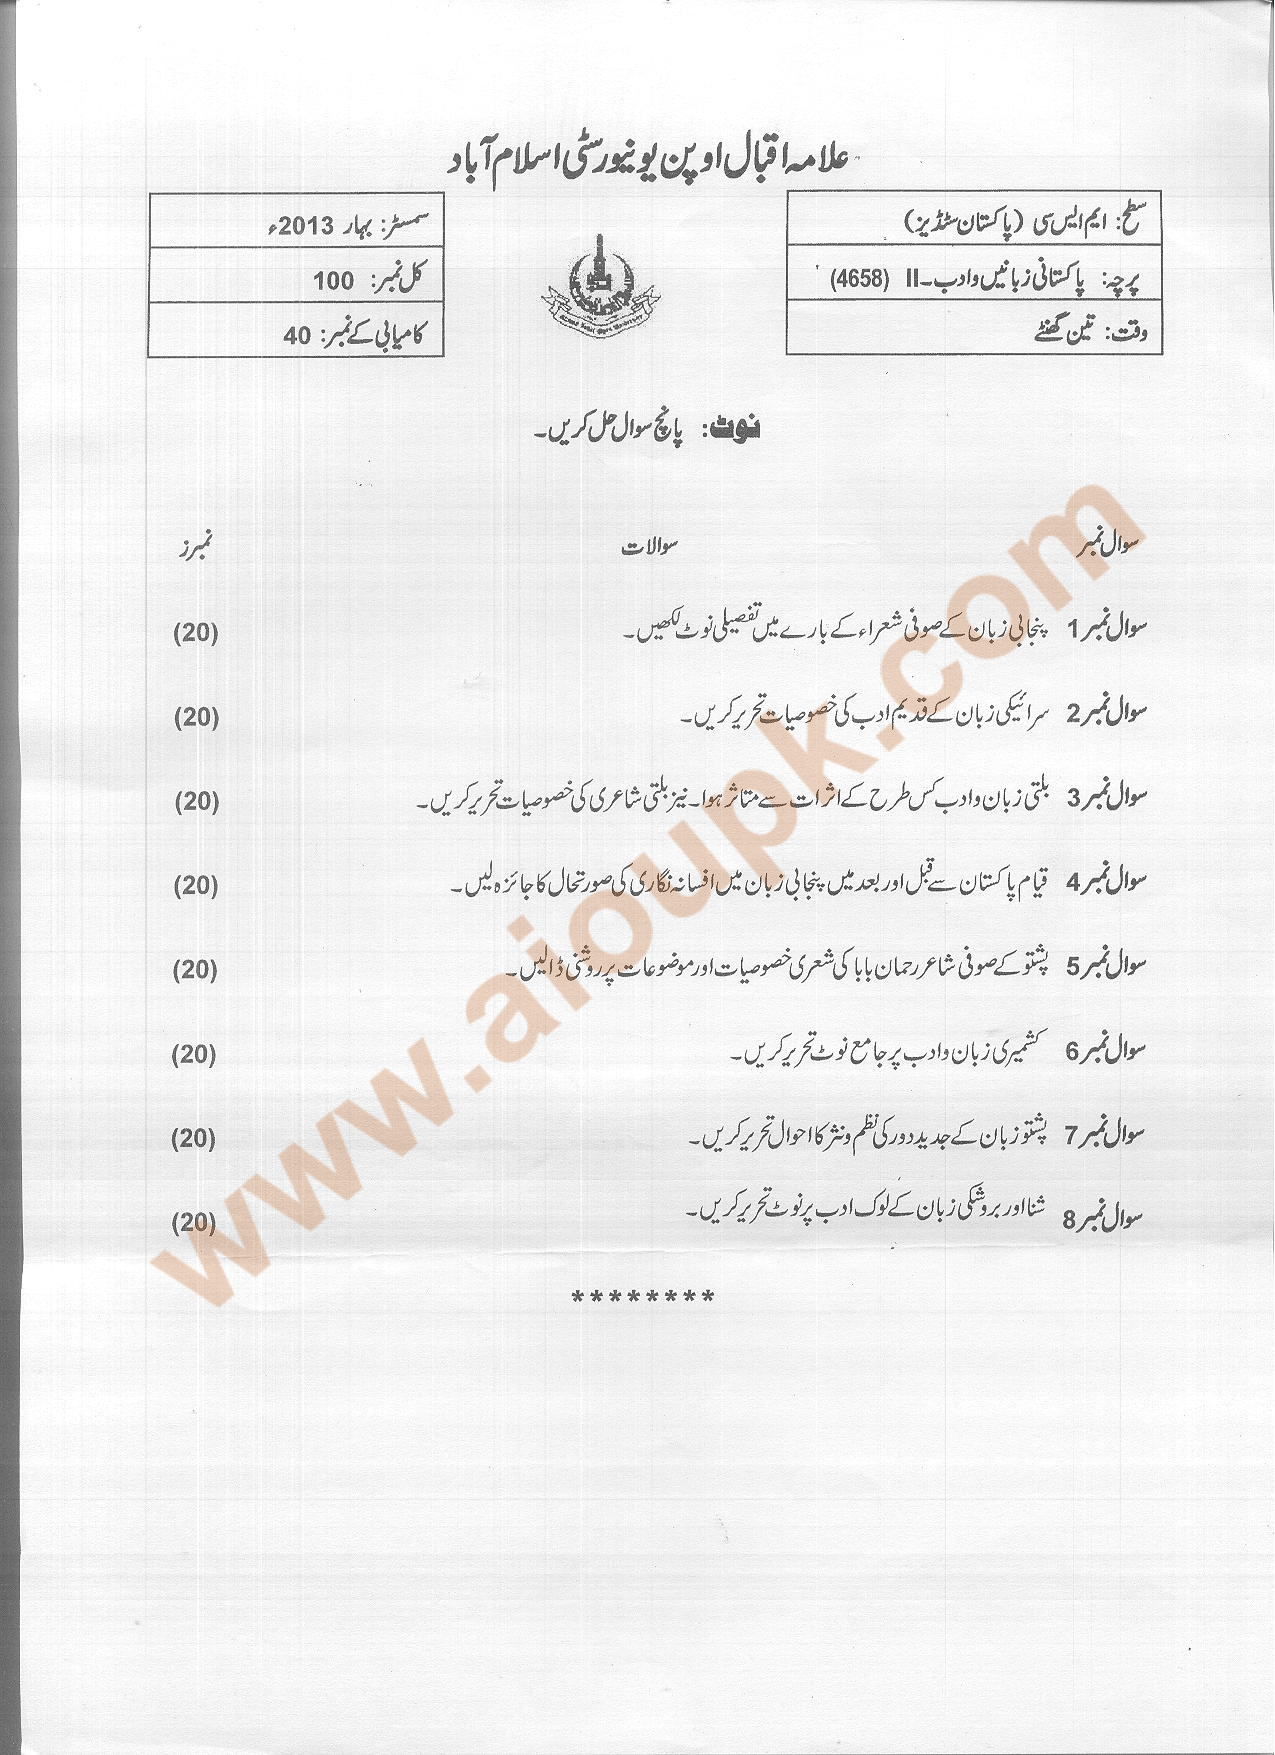 Pakistani Languages Amp Literature Ii Code 4658 M Sc Aiou